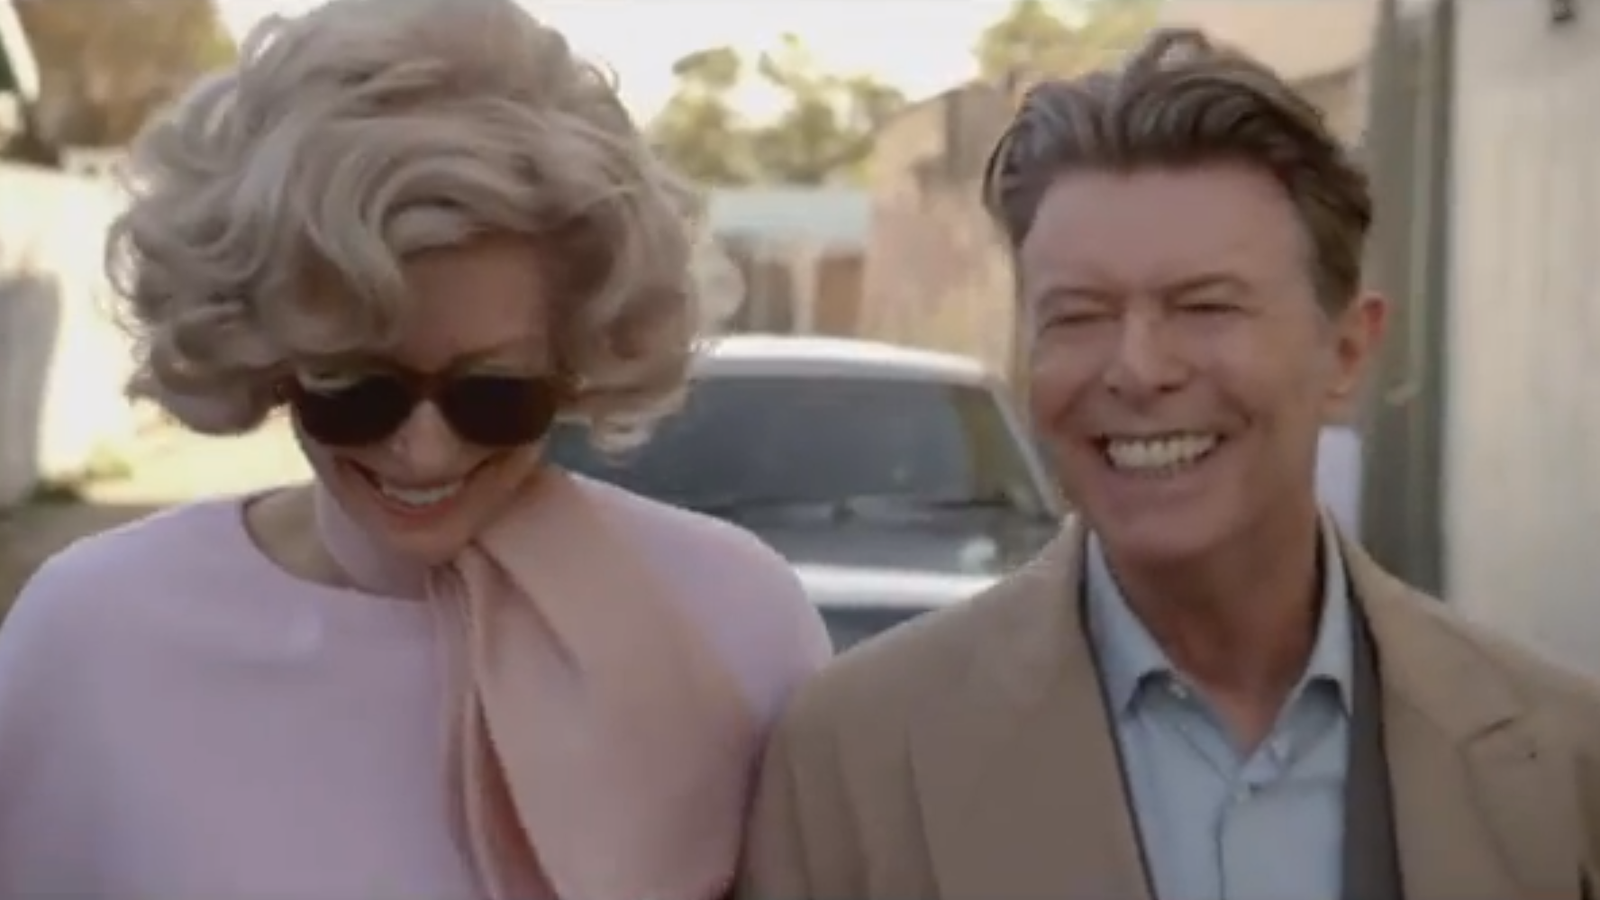 Nou videoclip de David Bowie: 'The stars (are out tonight)'